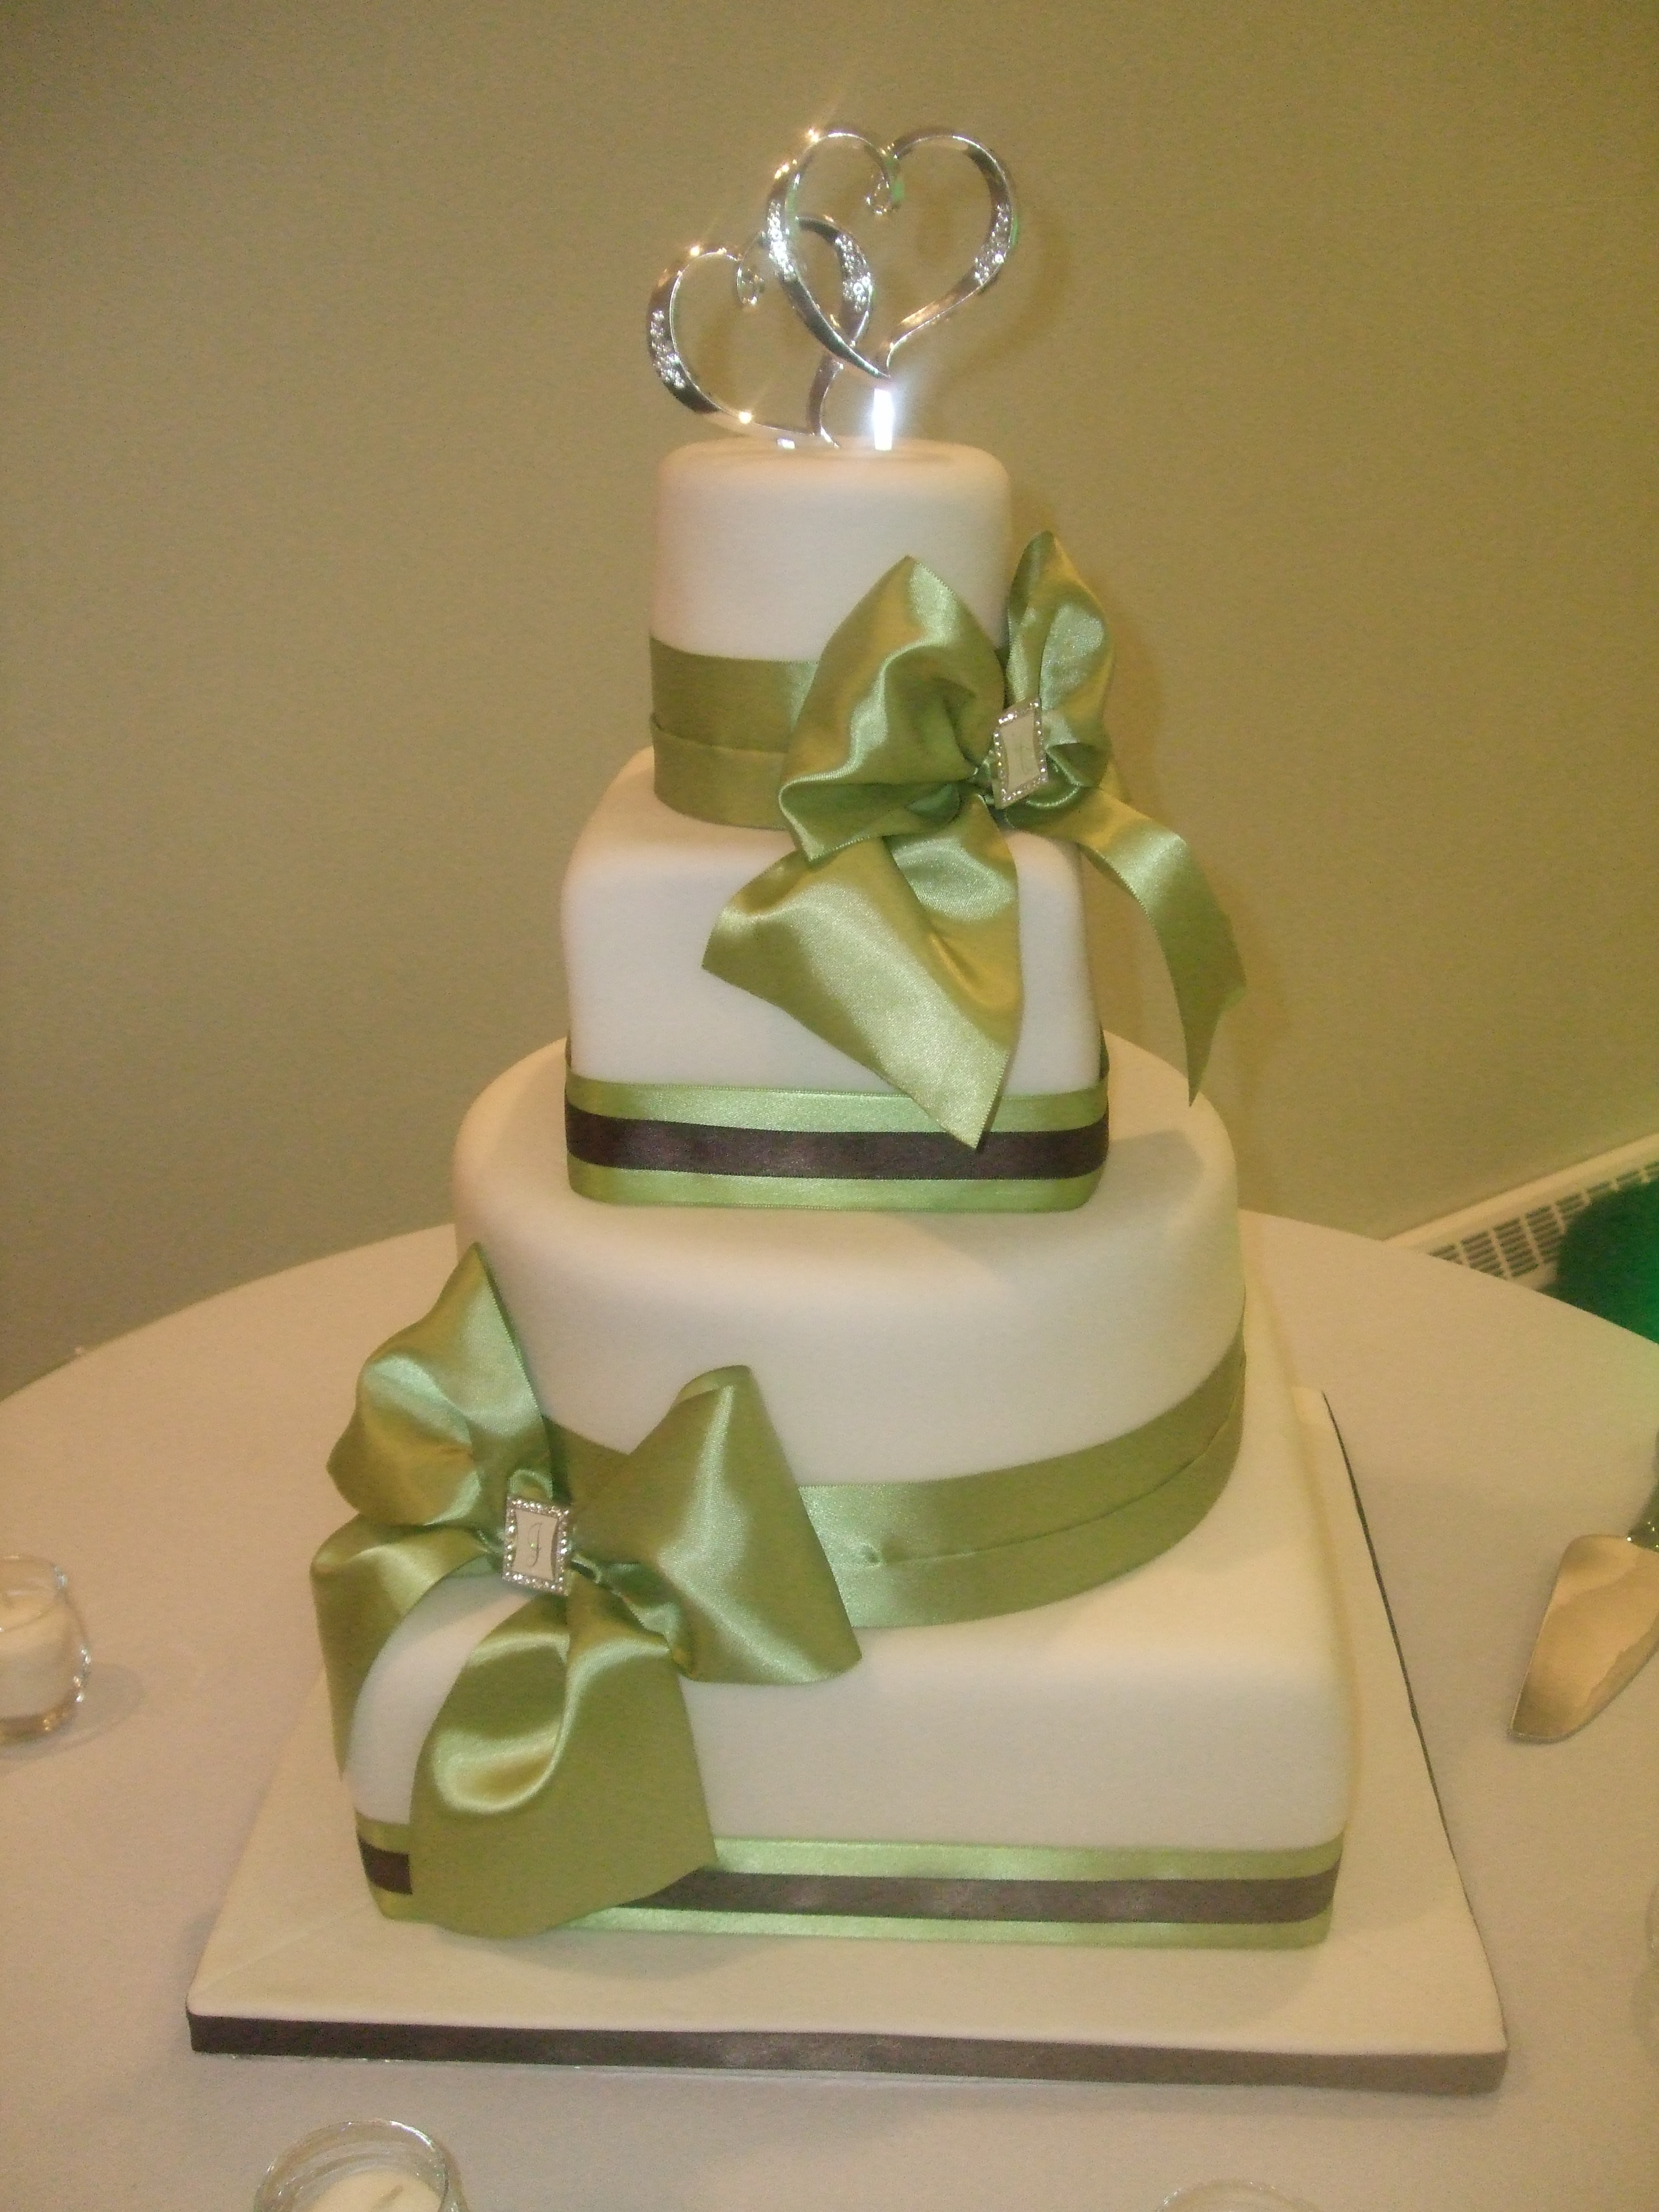 Fondant covered with real ribbon